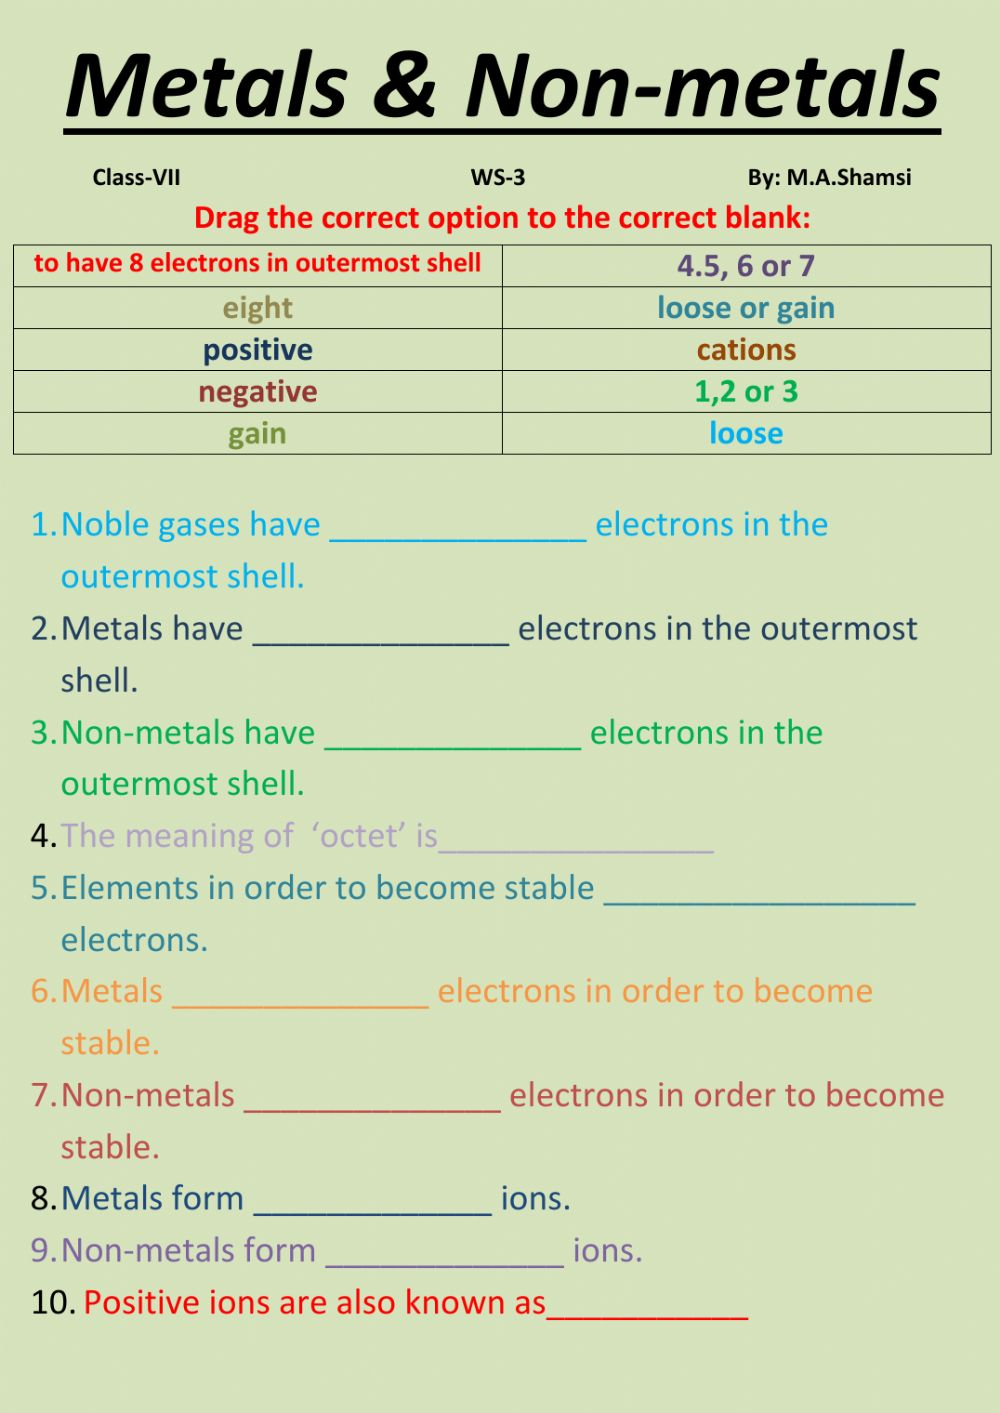 medium resolution of Metals and non- metals interactive worksheet